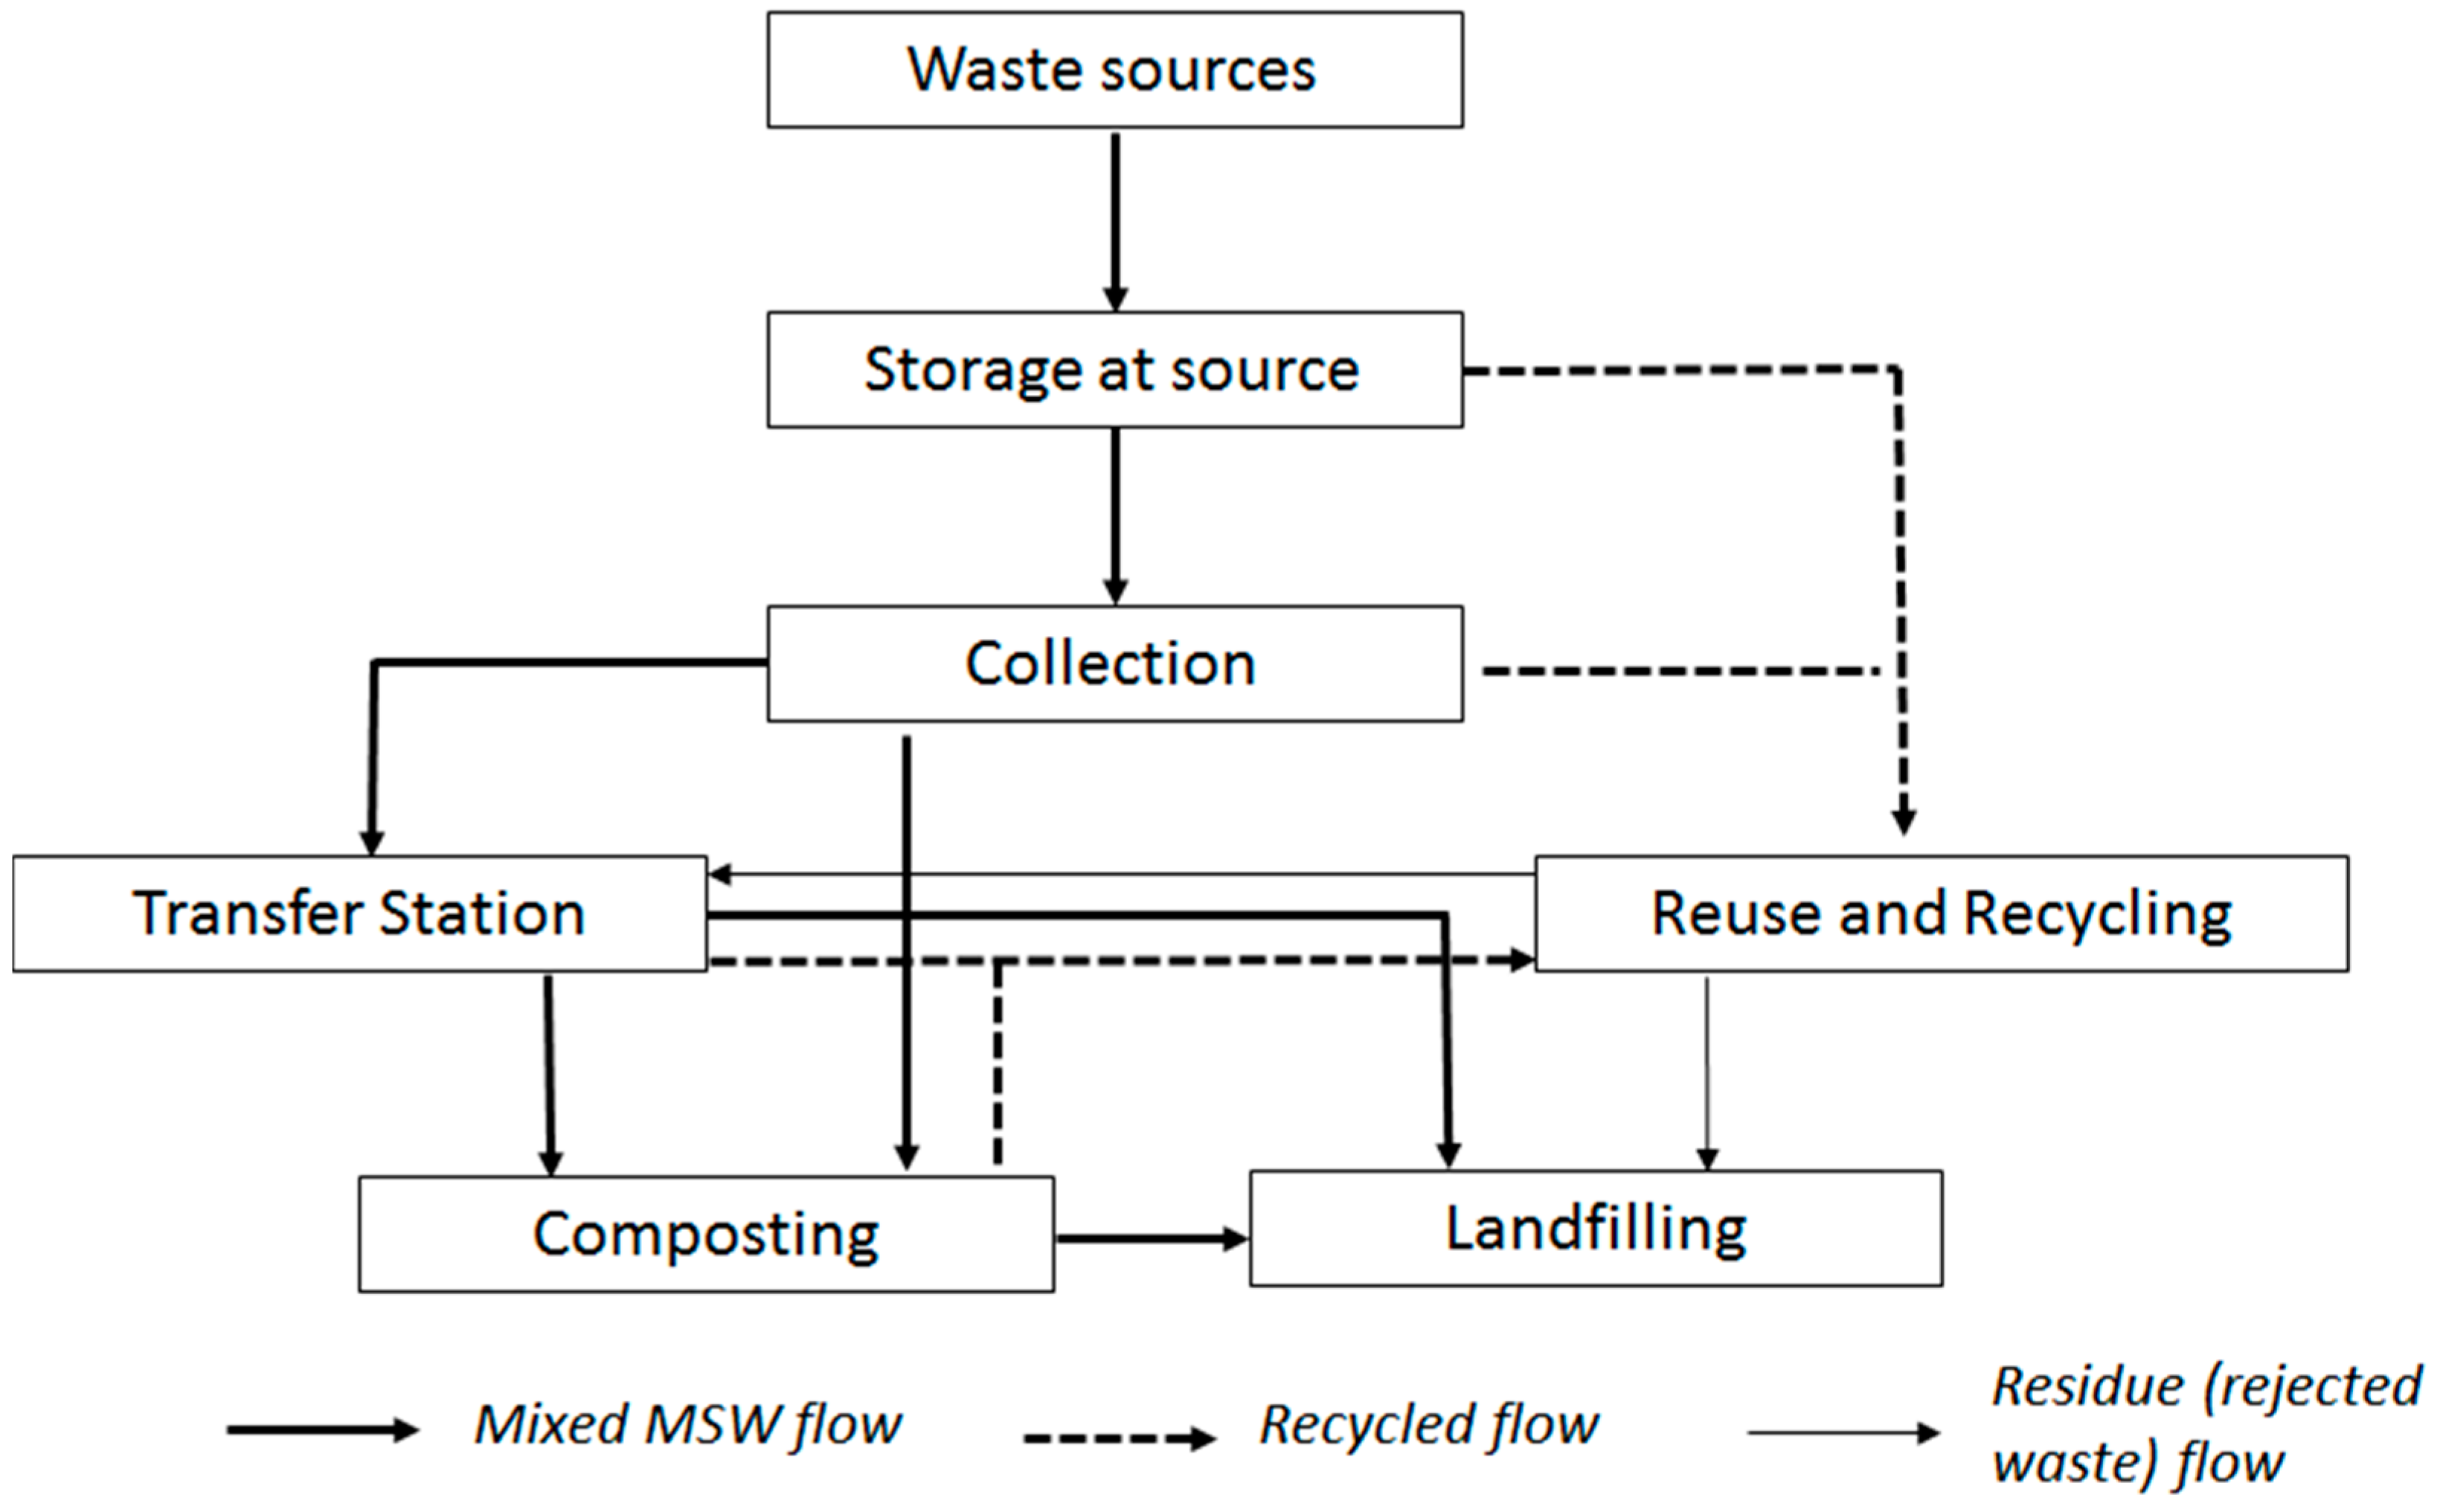 process flow diagram of all waste streams wiring diagram 2019process flow diagram all waste streams wiring library